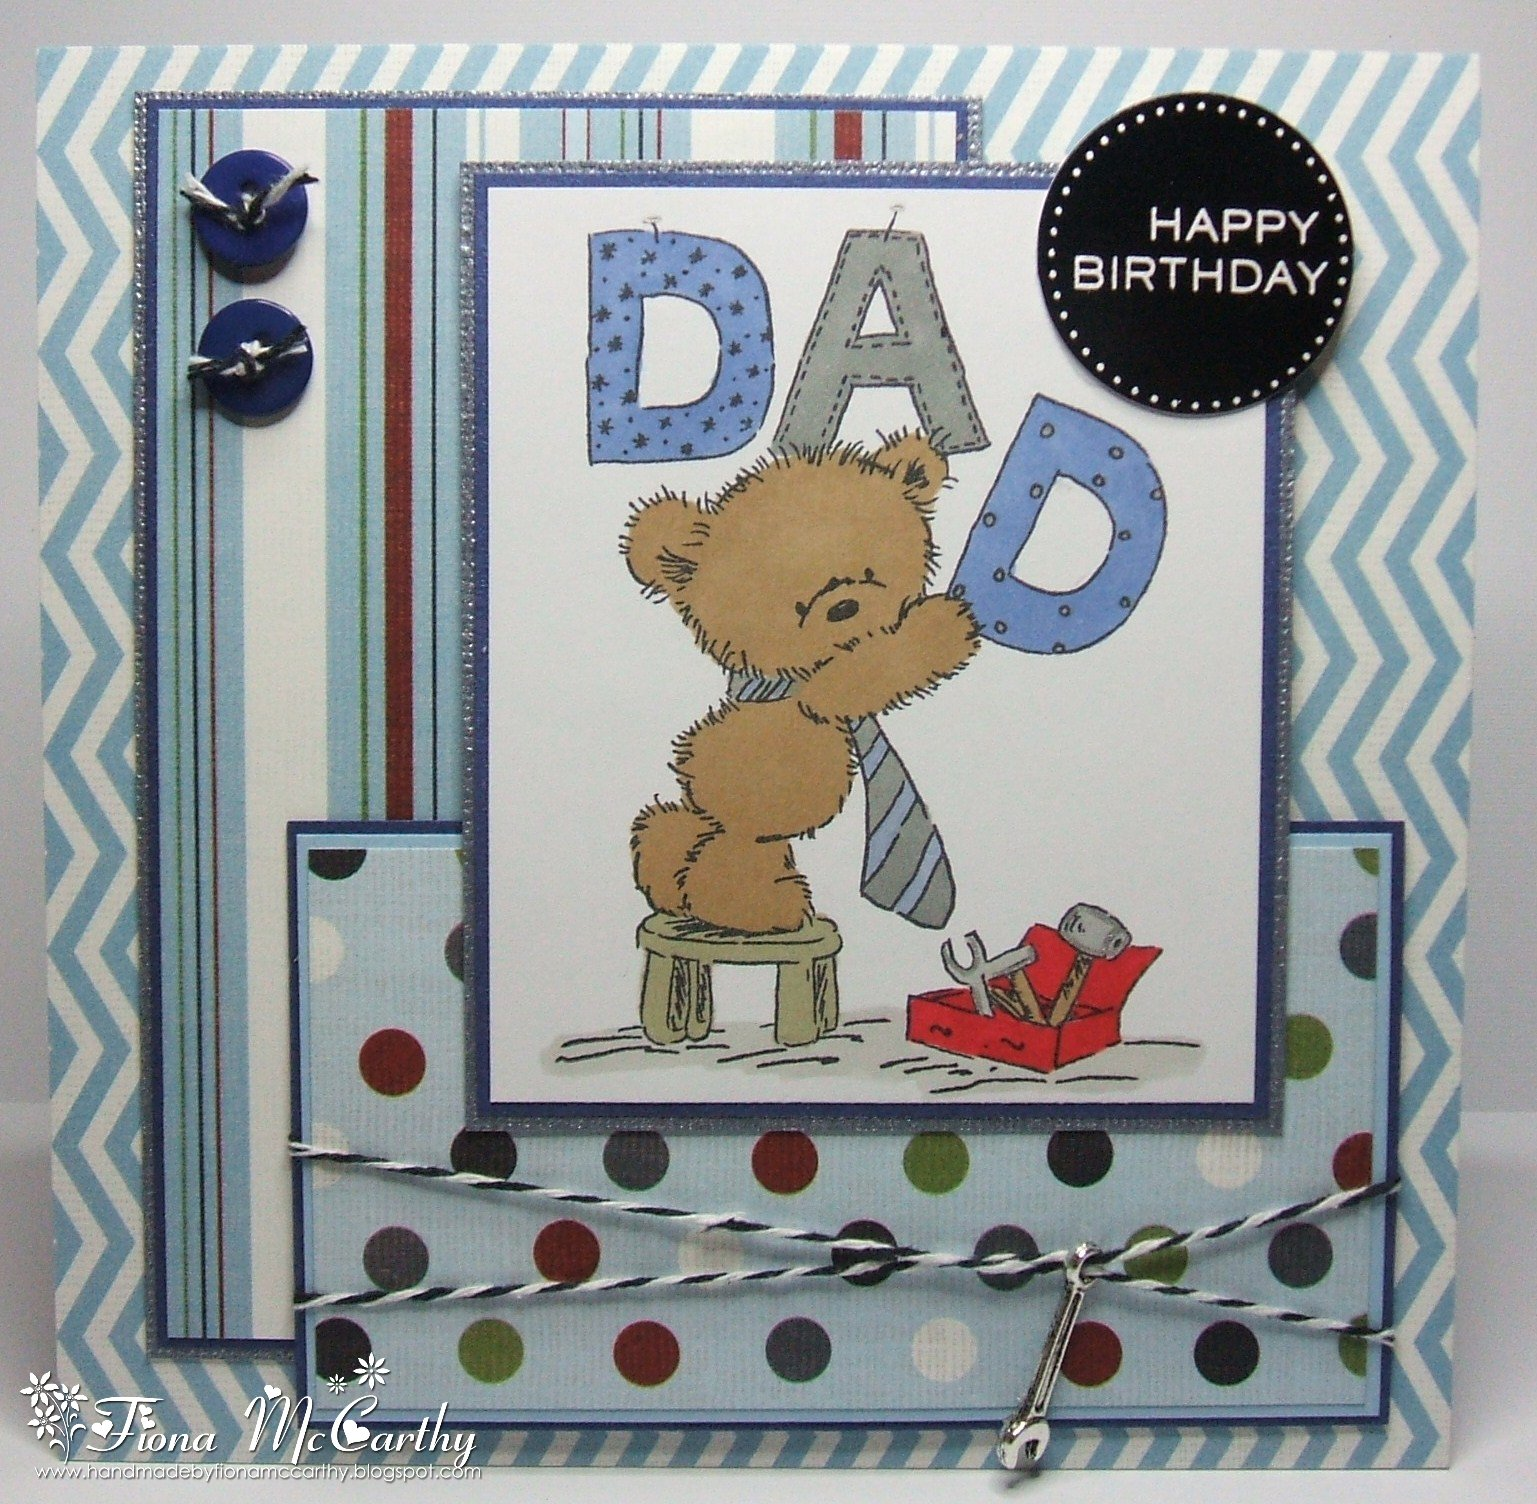 Handmade by fiona mccarthy my dads birthday card my dads birthday card bookmarktalkfo Gallery